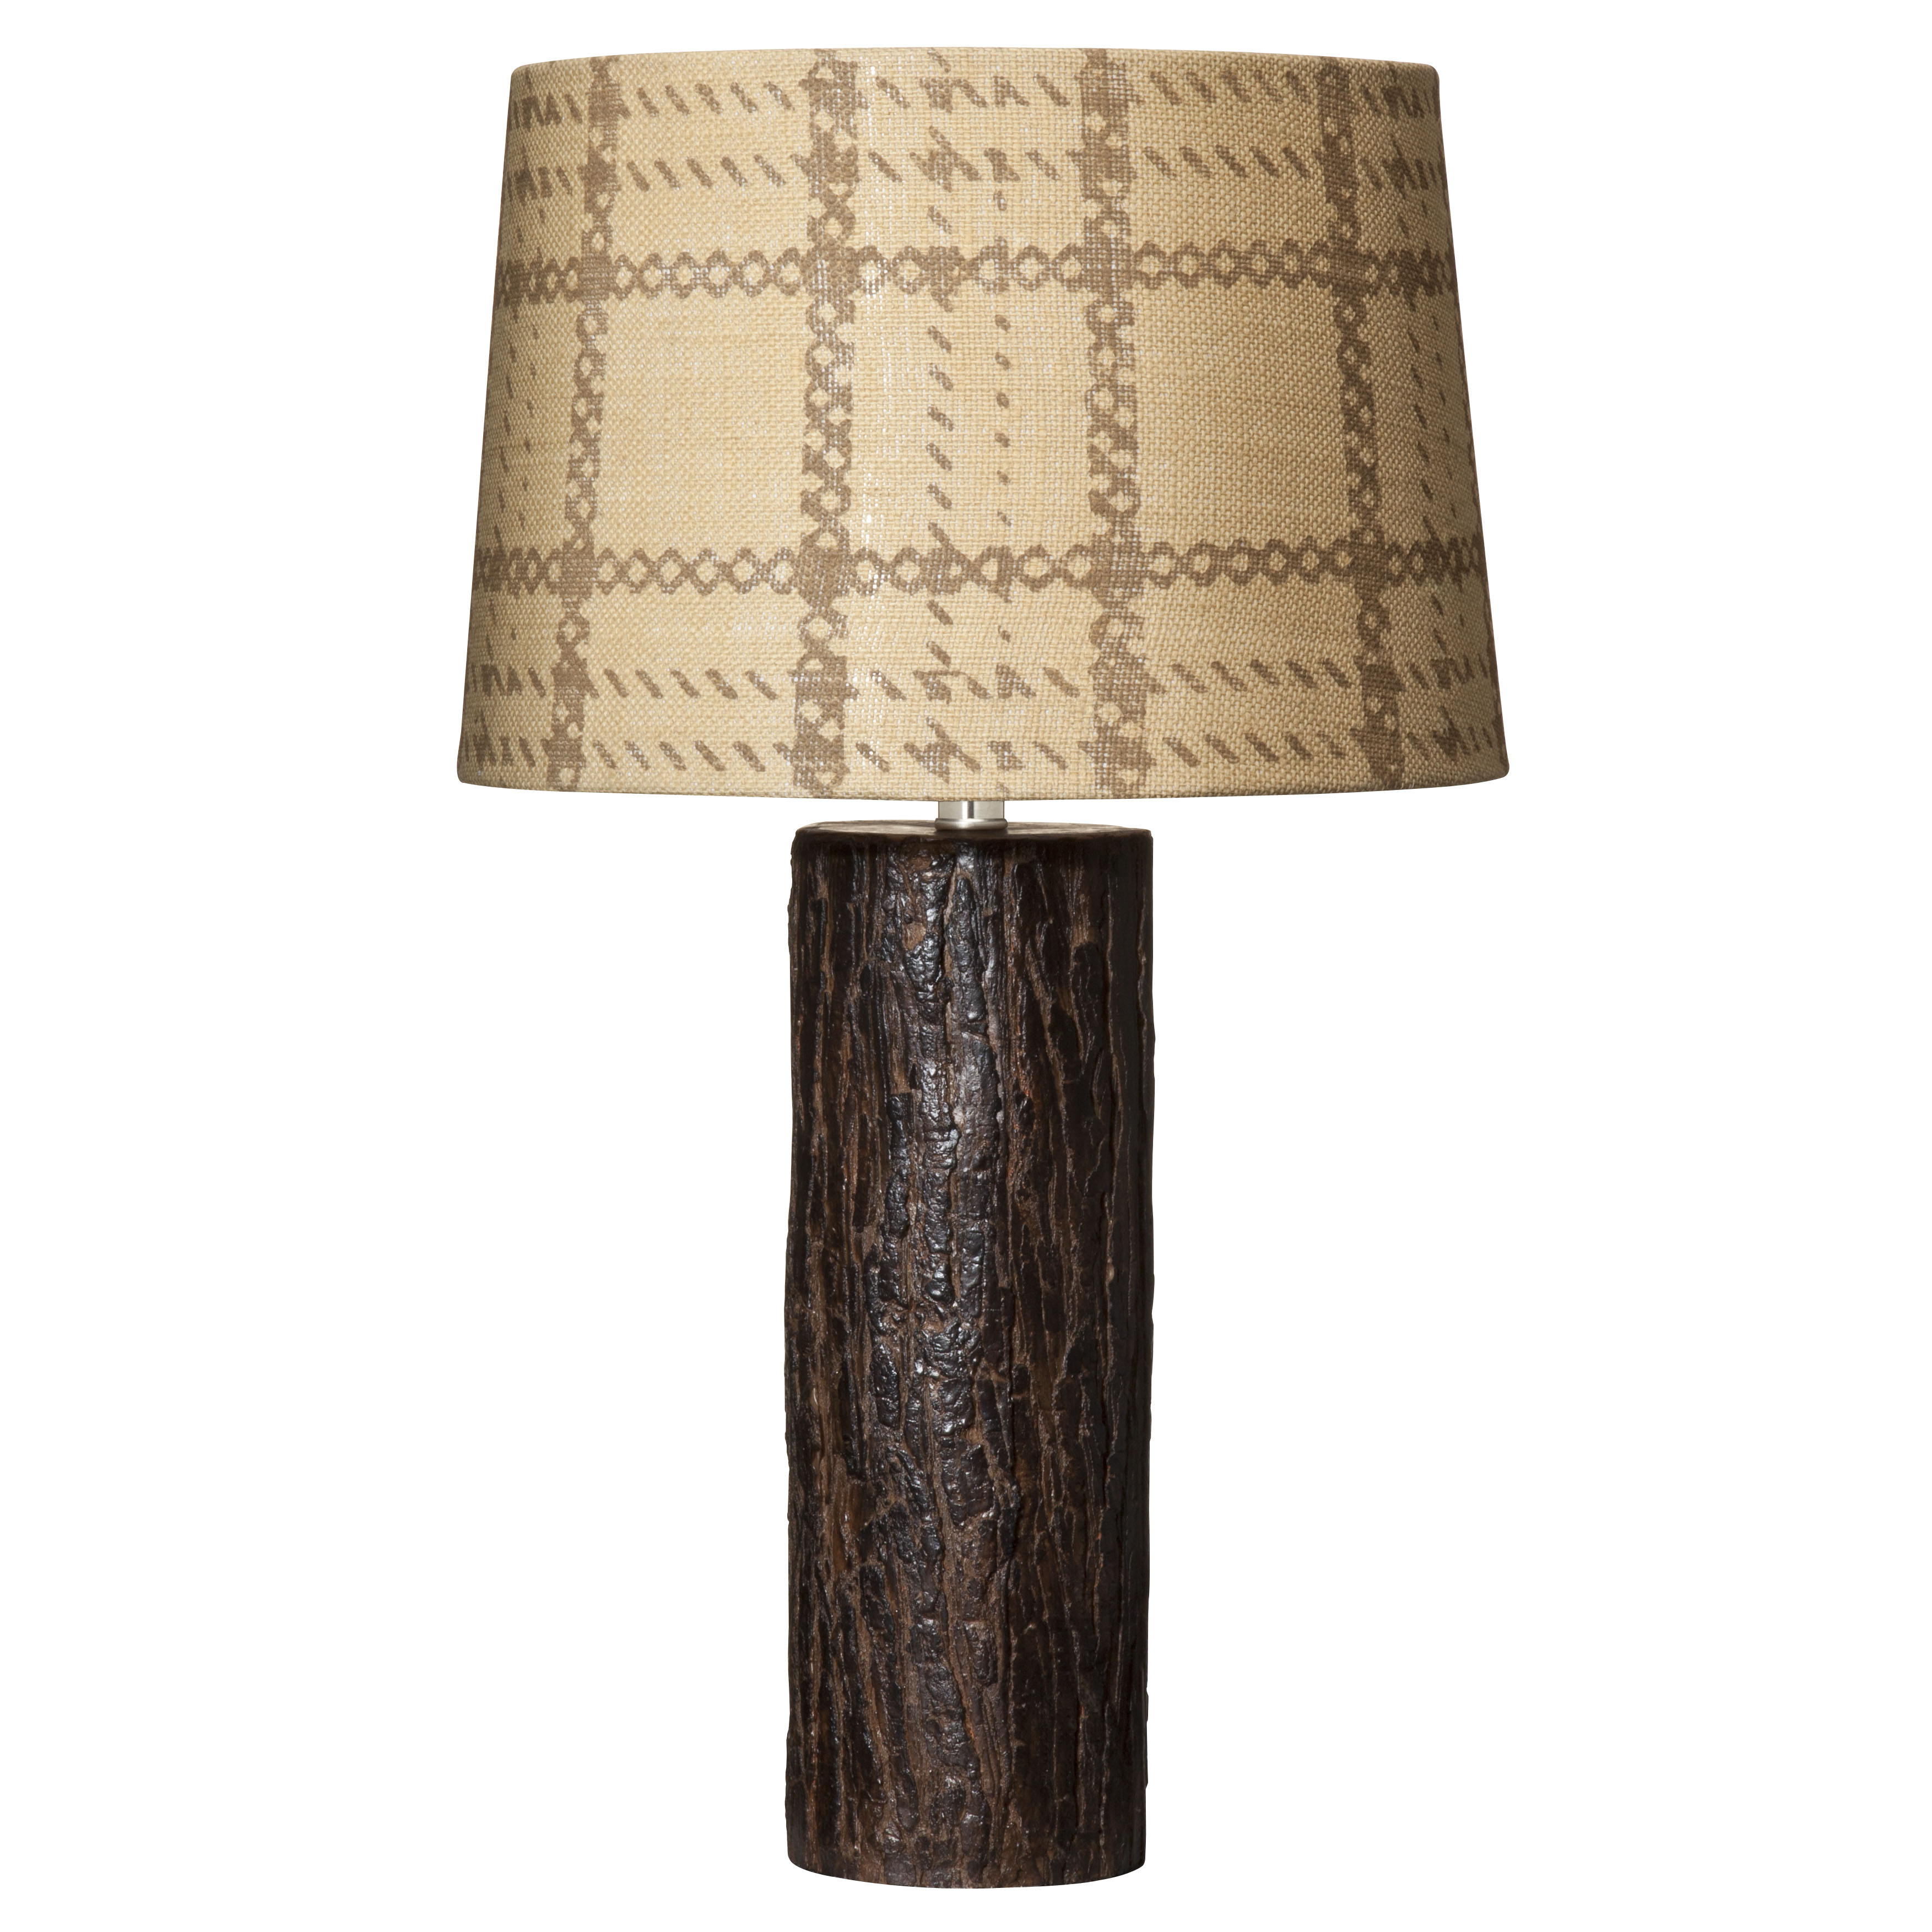 221201 Target Home Plaid Burlap Shade And Wooden Lamp Base